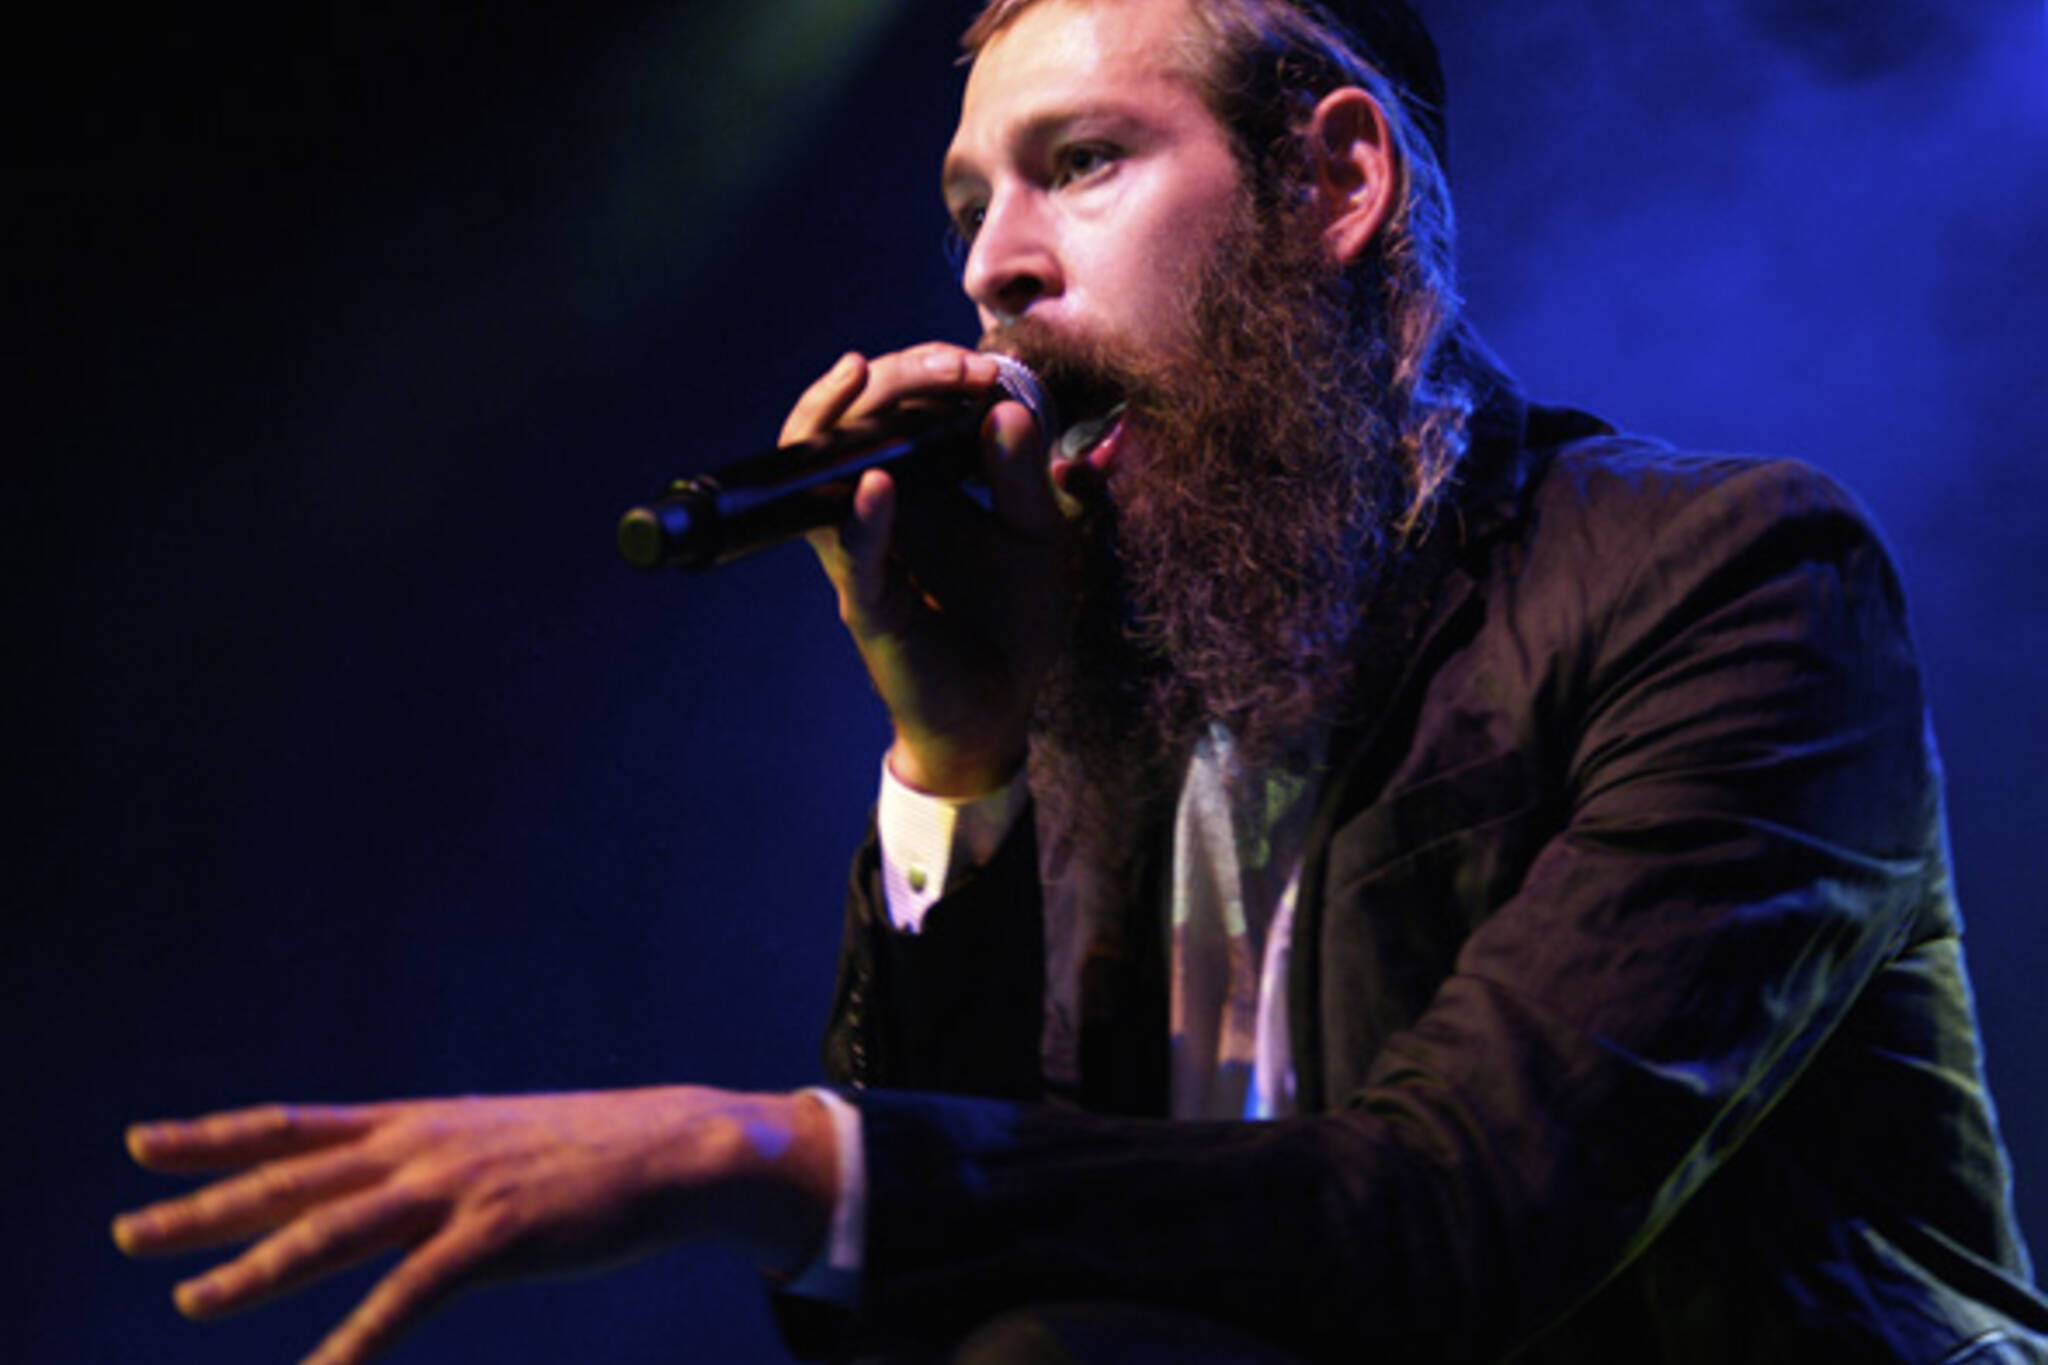 Matisyahu sings his brand of reggae music to a sold-out crowd at The Phoenix in Toronto